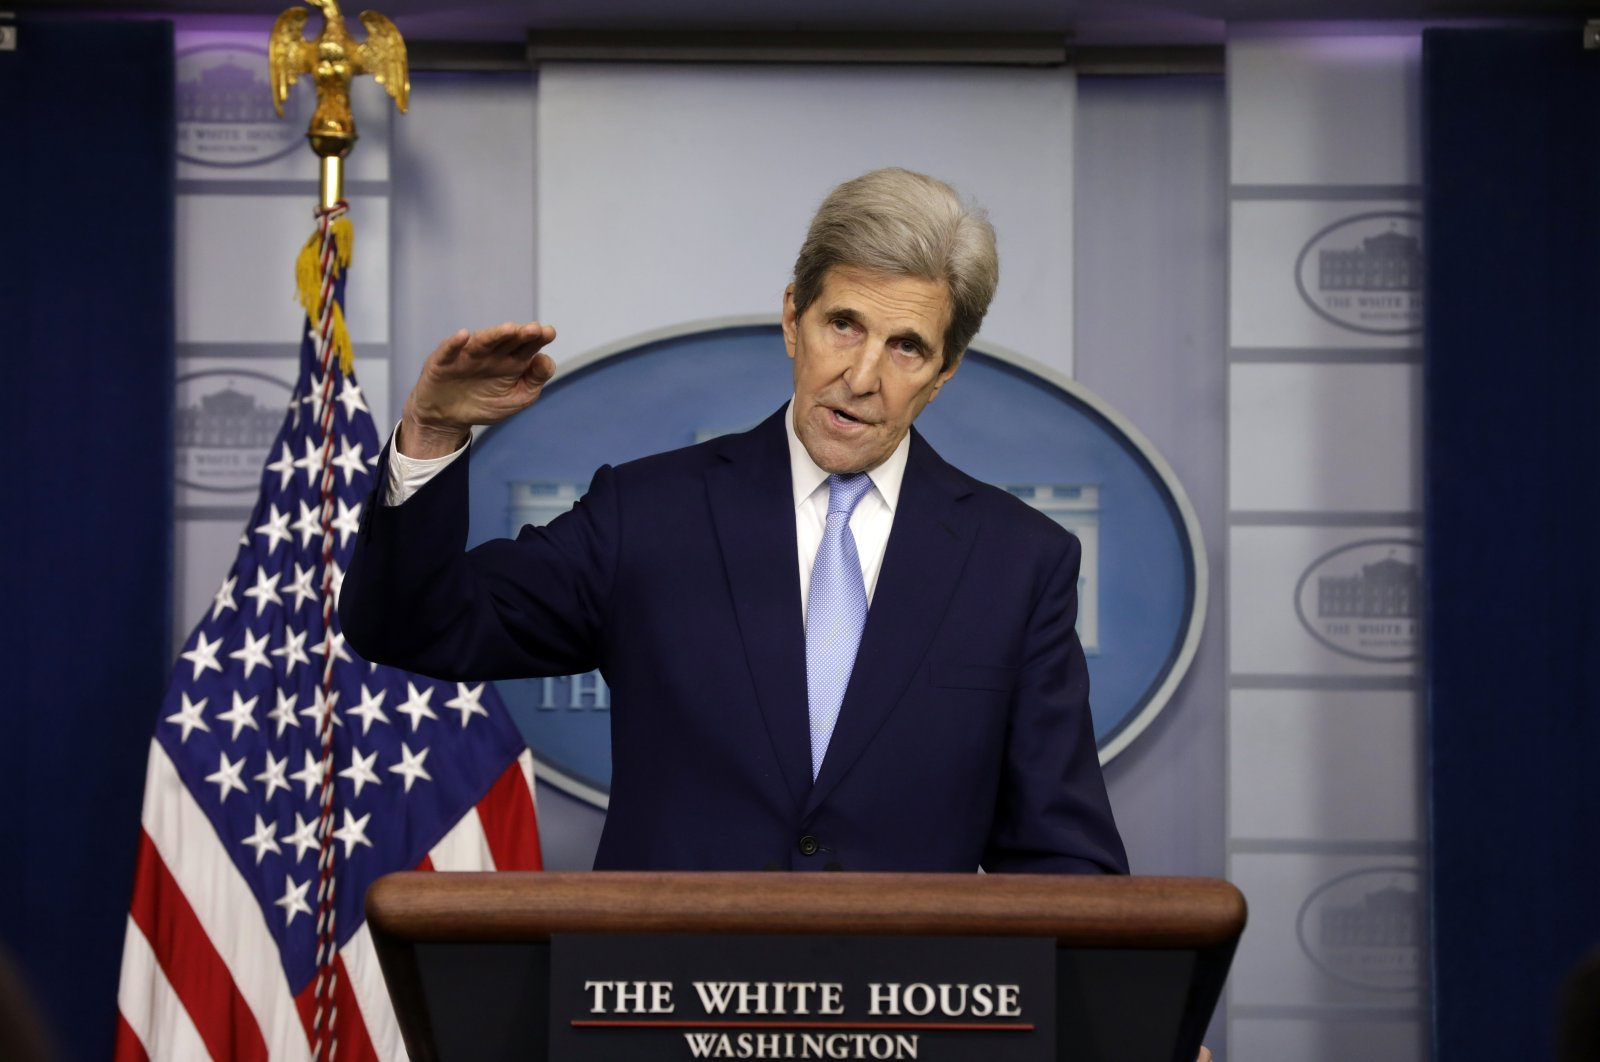 U.S. Special Presidential Envoy for Climate John Kerry speaks at a press briefing at the White House in Washington, DC, U.S., April 22, 2021. (EPA Photo)